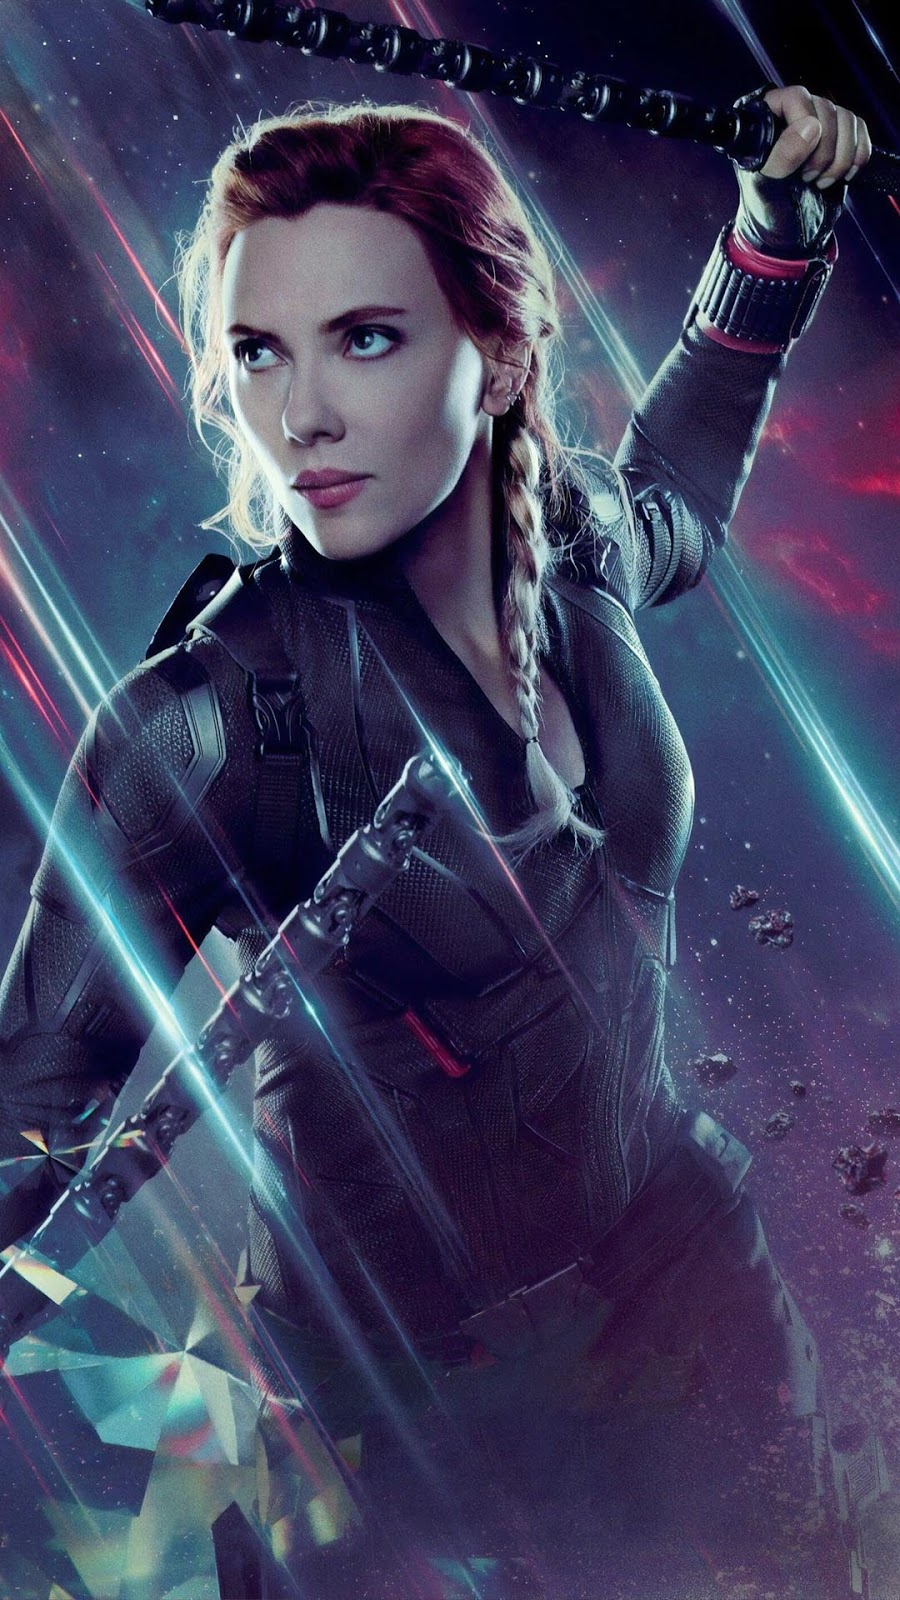 Black Widow Mobile Wallpaper rambut pirang ekor kuda